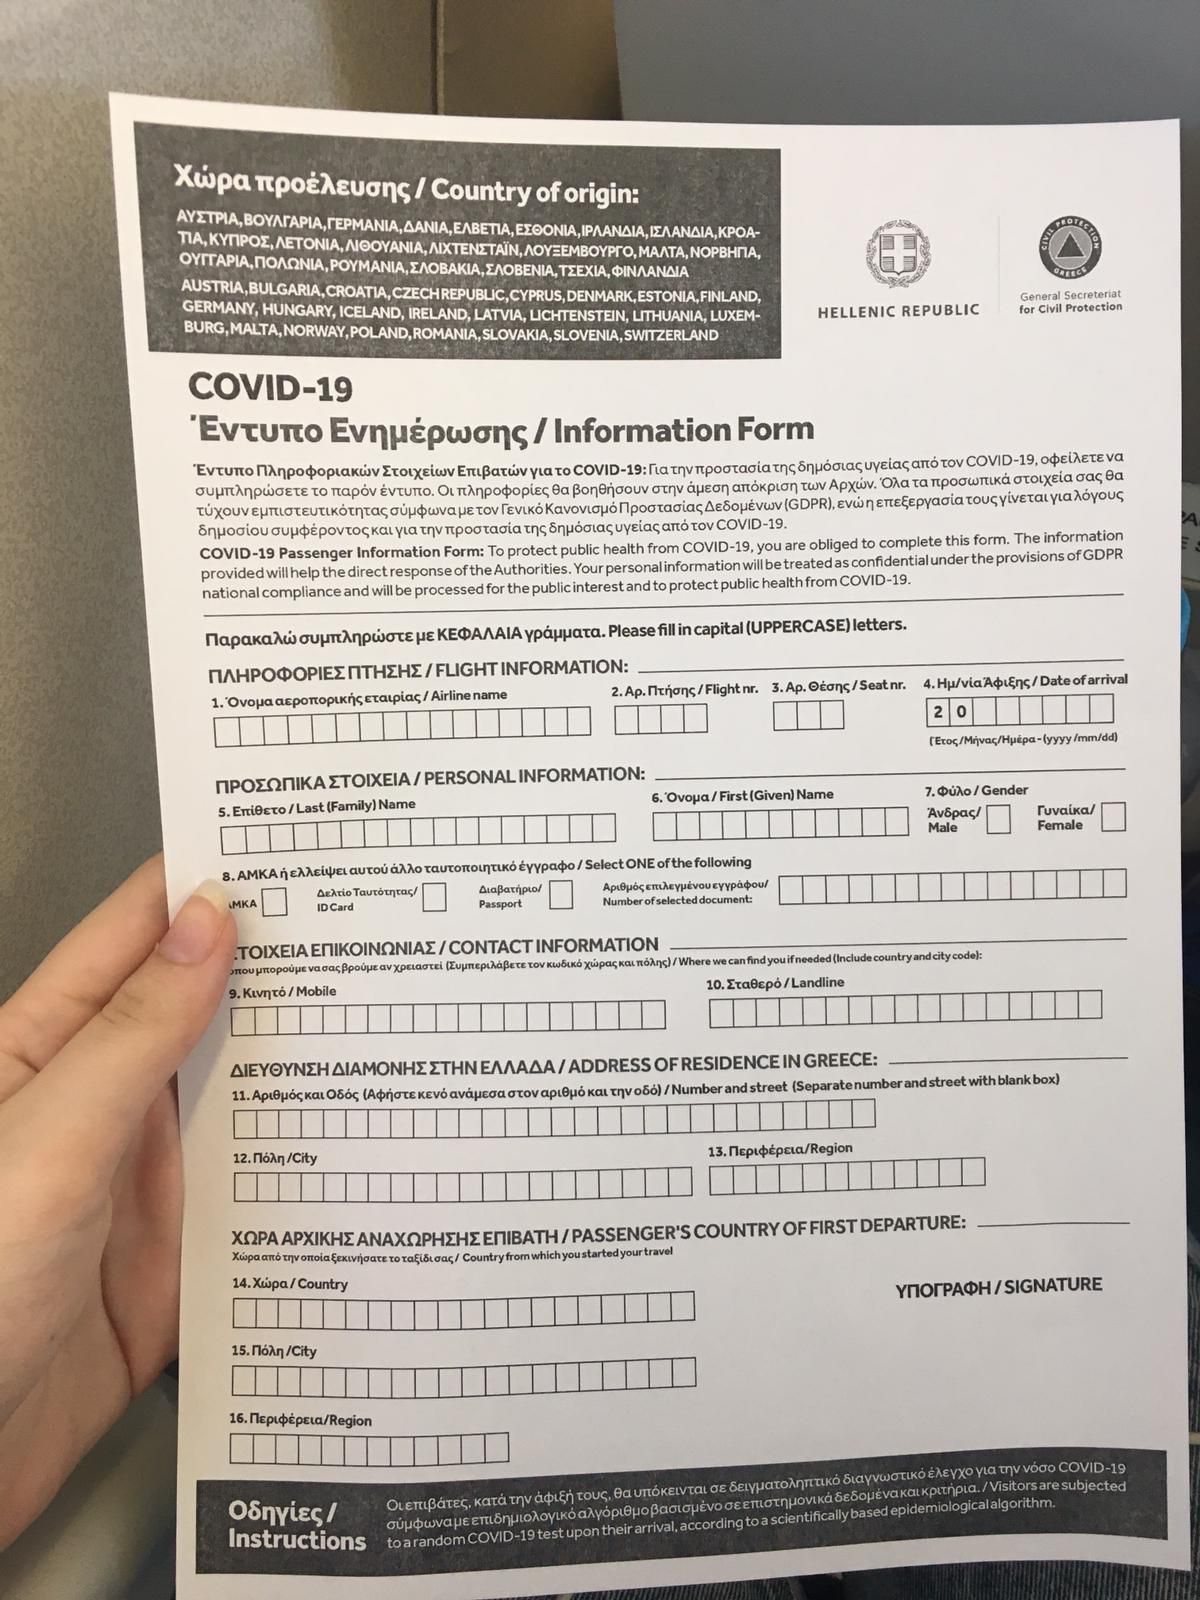 A COVID-19 information form handed out on airplanes arriving in Greece. All passengers are required to fill out locator forms and are subject to 24-hour self-isolation upon arrival.